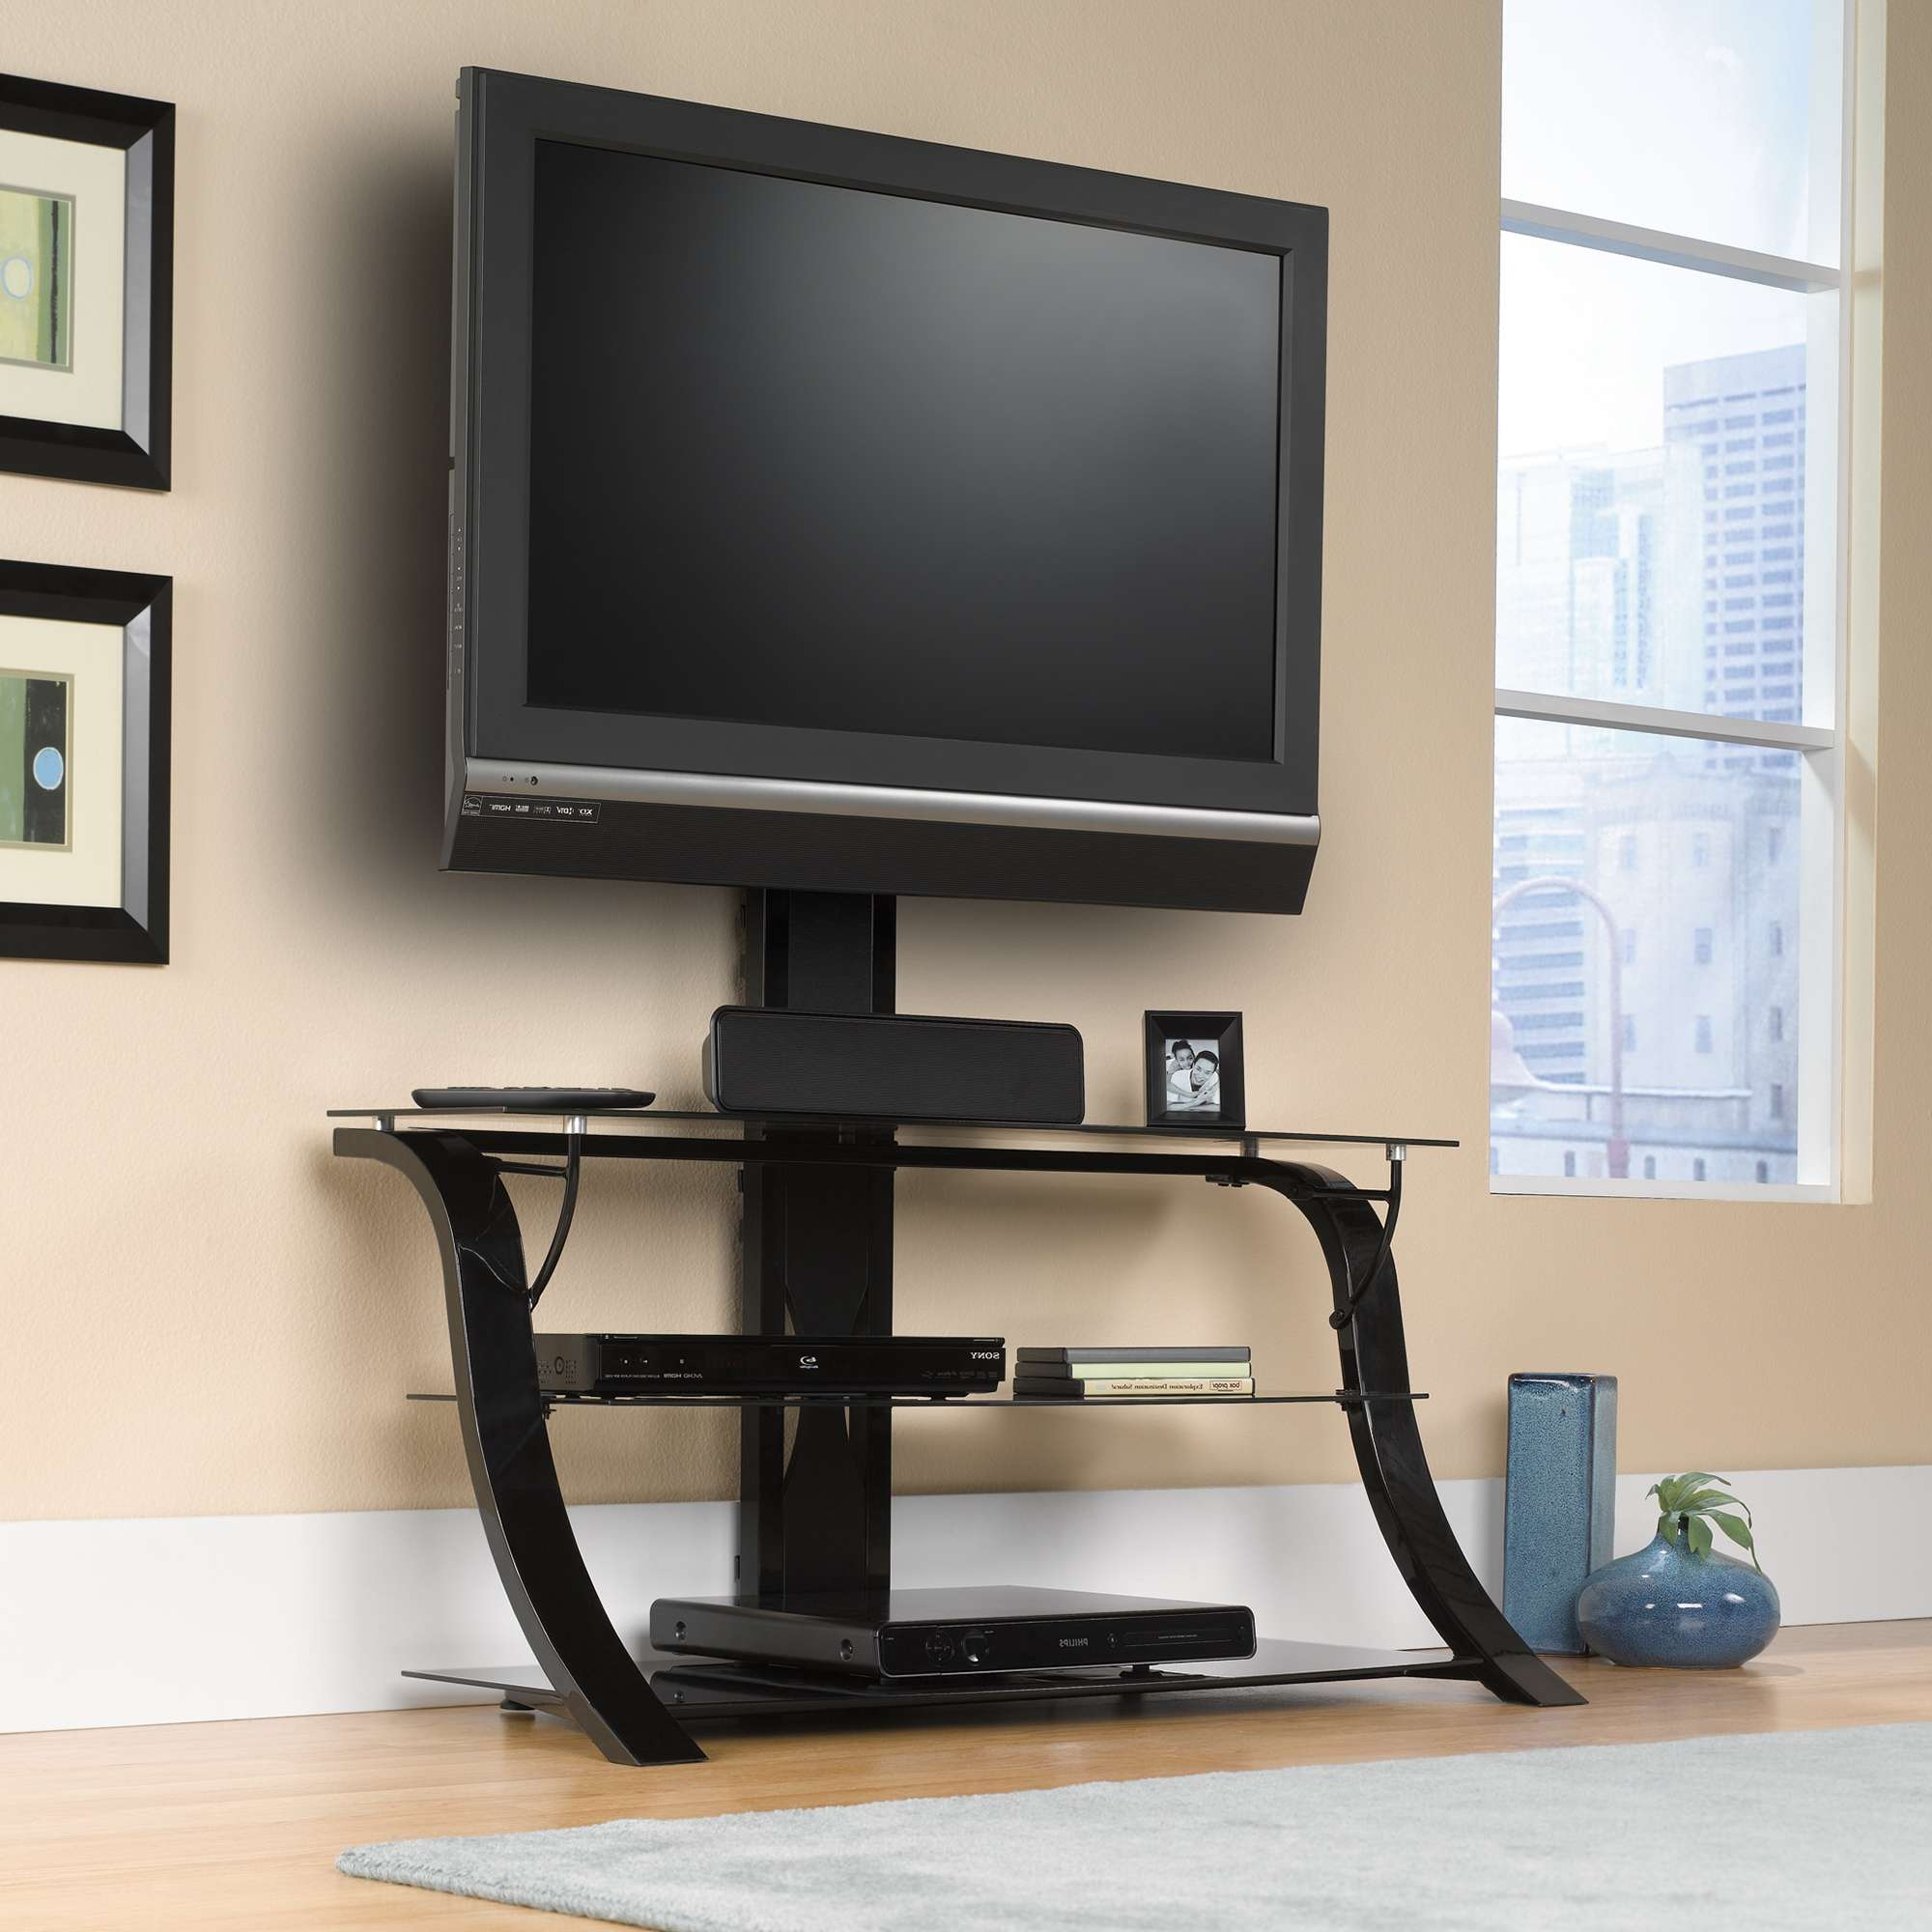 Tv Stand : Da1De92Aaf0E 1 Marvelous Tv Stand With Pictures Design In Cordoba Tv Stands (View 11 of 15)